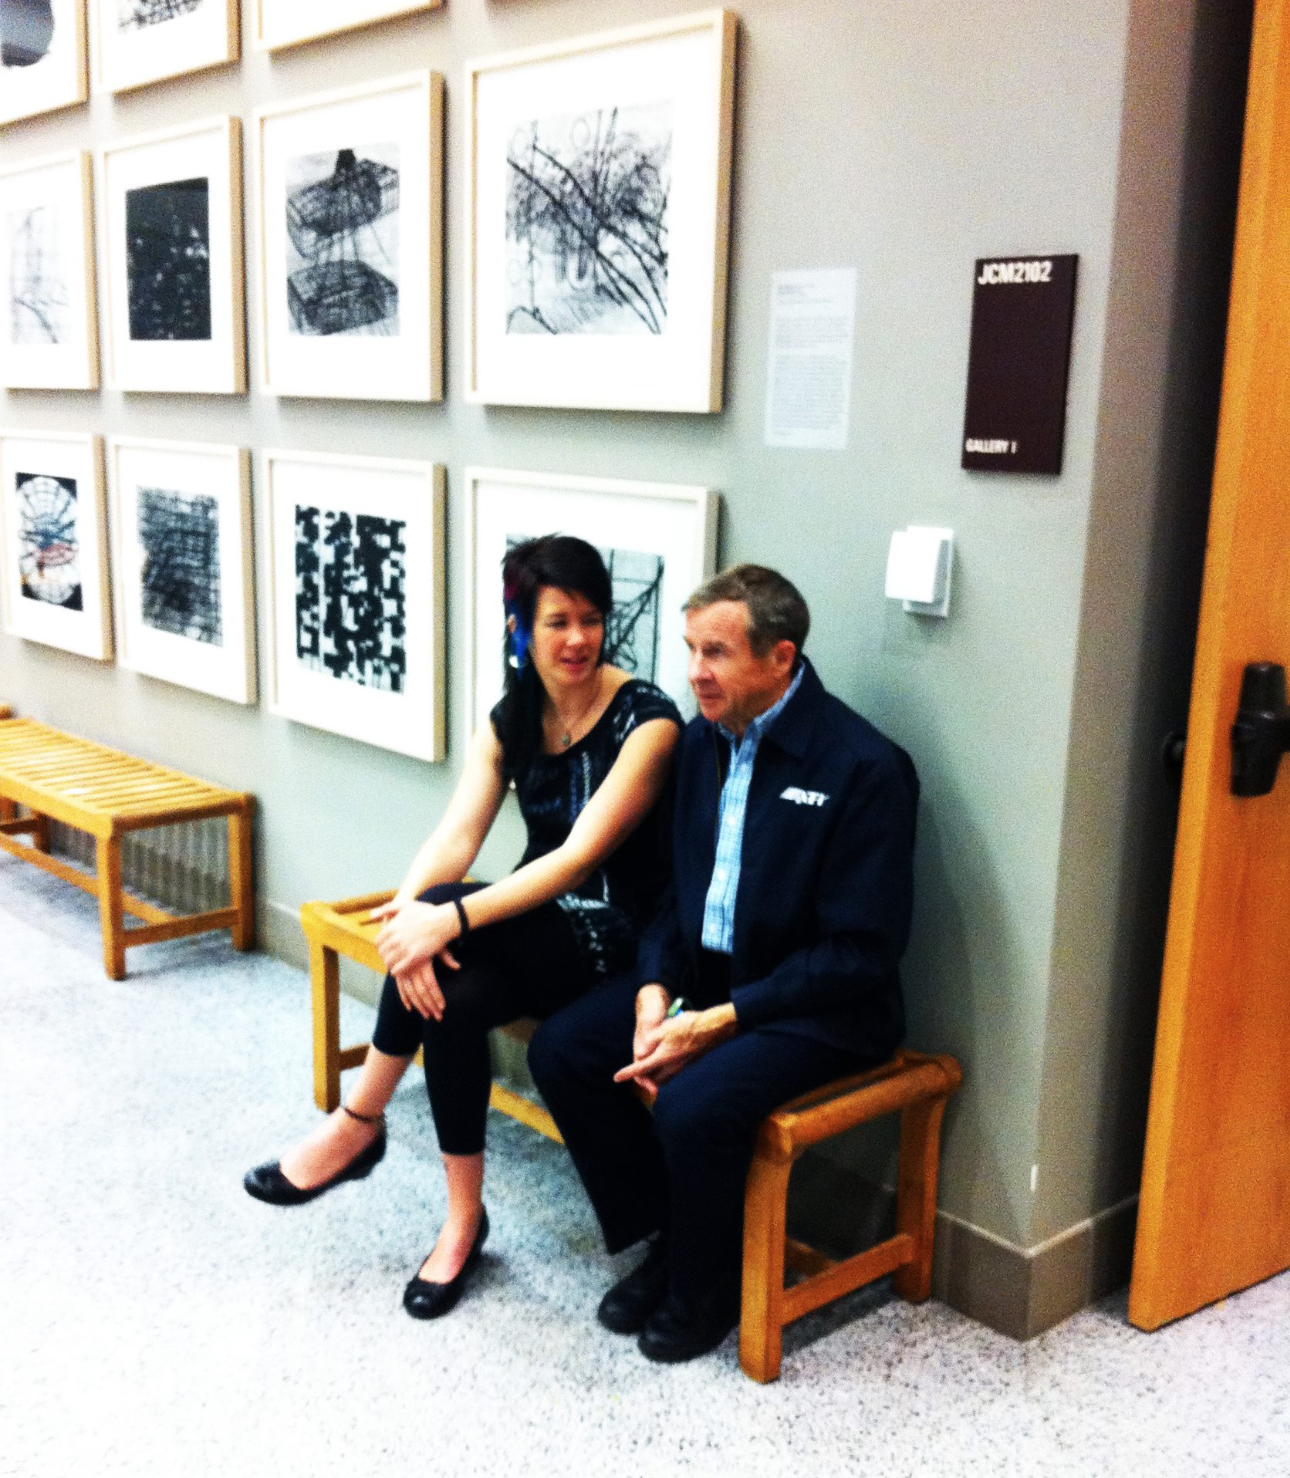 Jody and her father Craig Cross at TSU during her graduation gallery show. December, 2011.